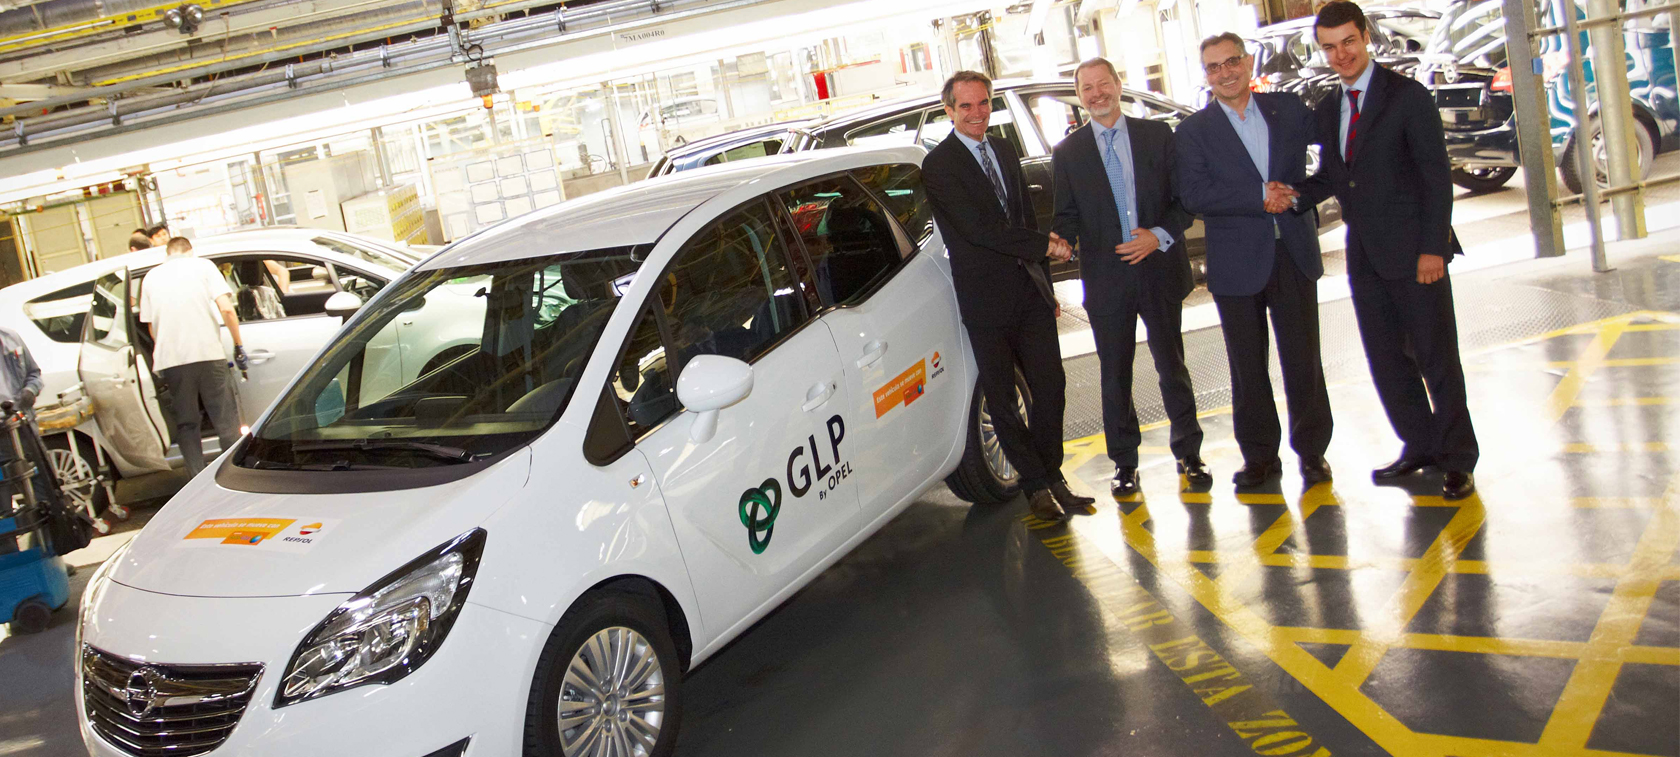 Opel and Repsol support autogas in Spain